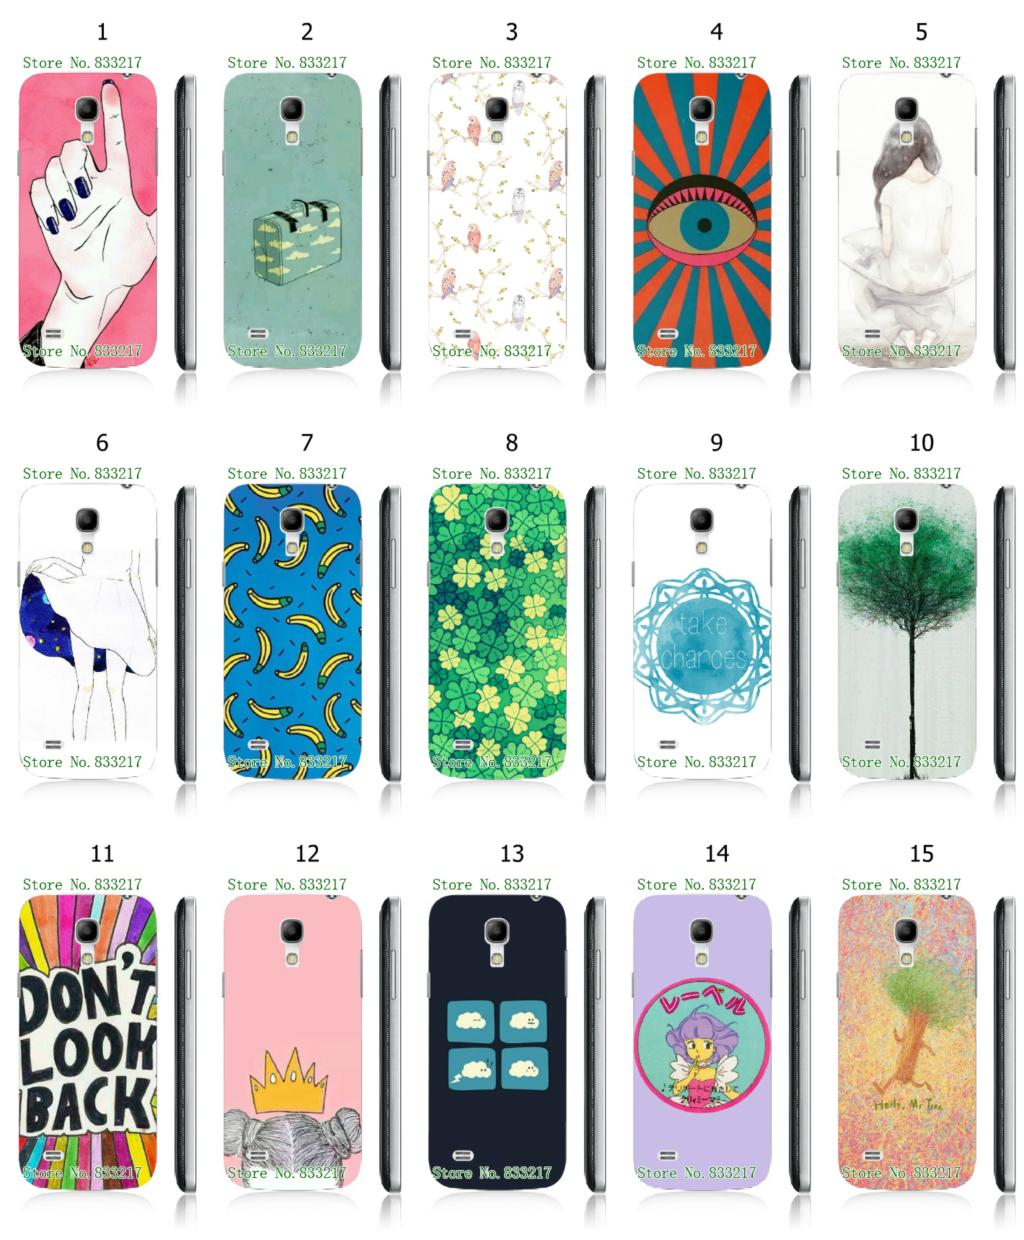 Mobile Phone Case Hot 1pc Plants Hybrid Design Protective White Hard Case For samsung galaxy I9190(S4 MINI) Free Shipping(China (Mainland))